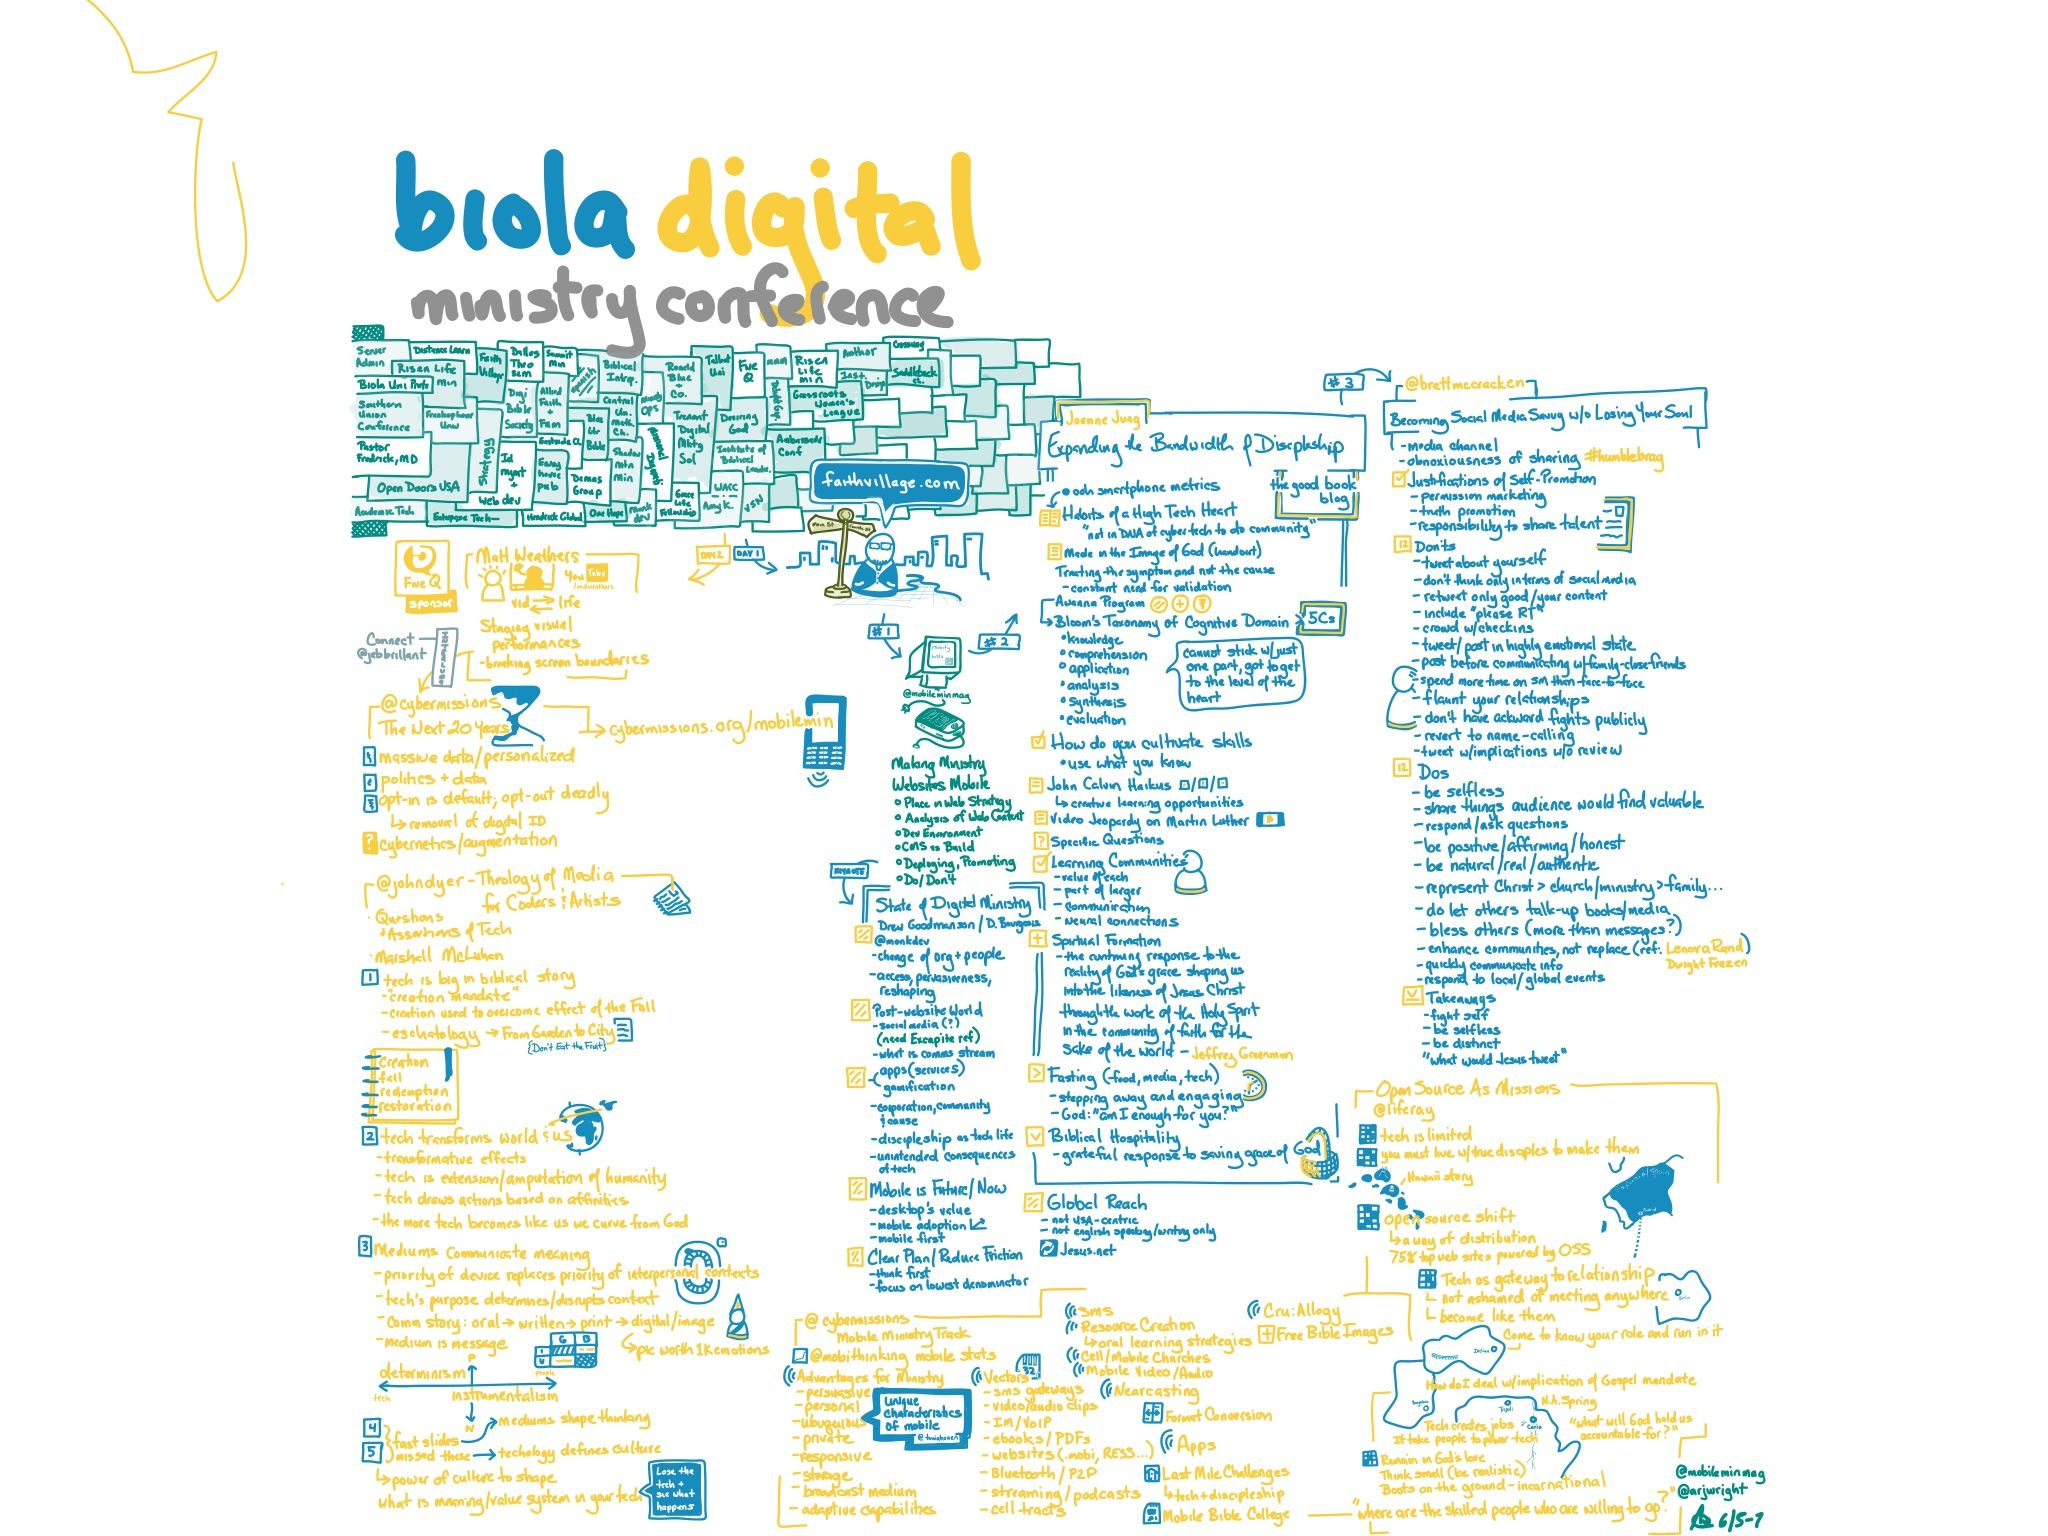 Biola Digital Minsitry Conference 2012 Sketchnote by Antoine RJ Wright